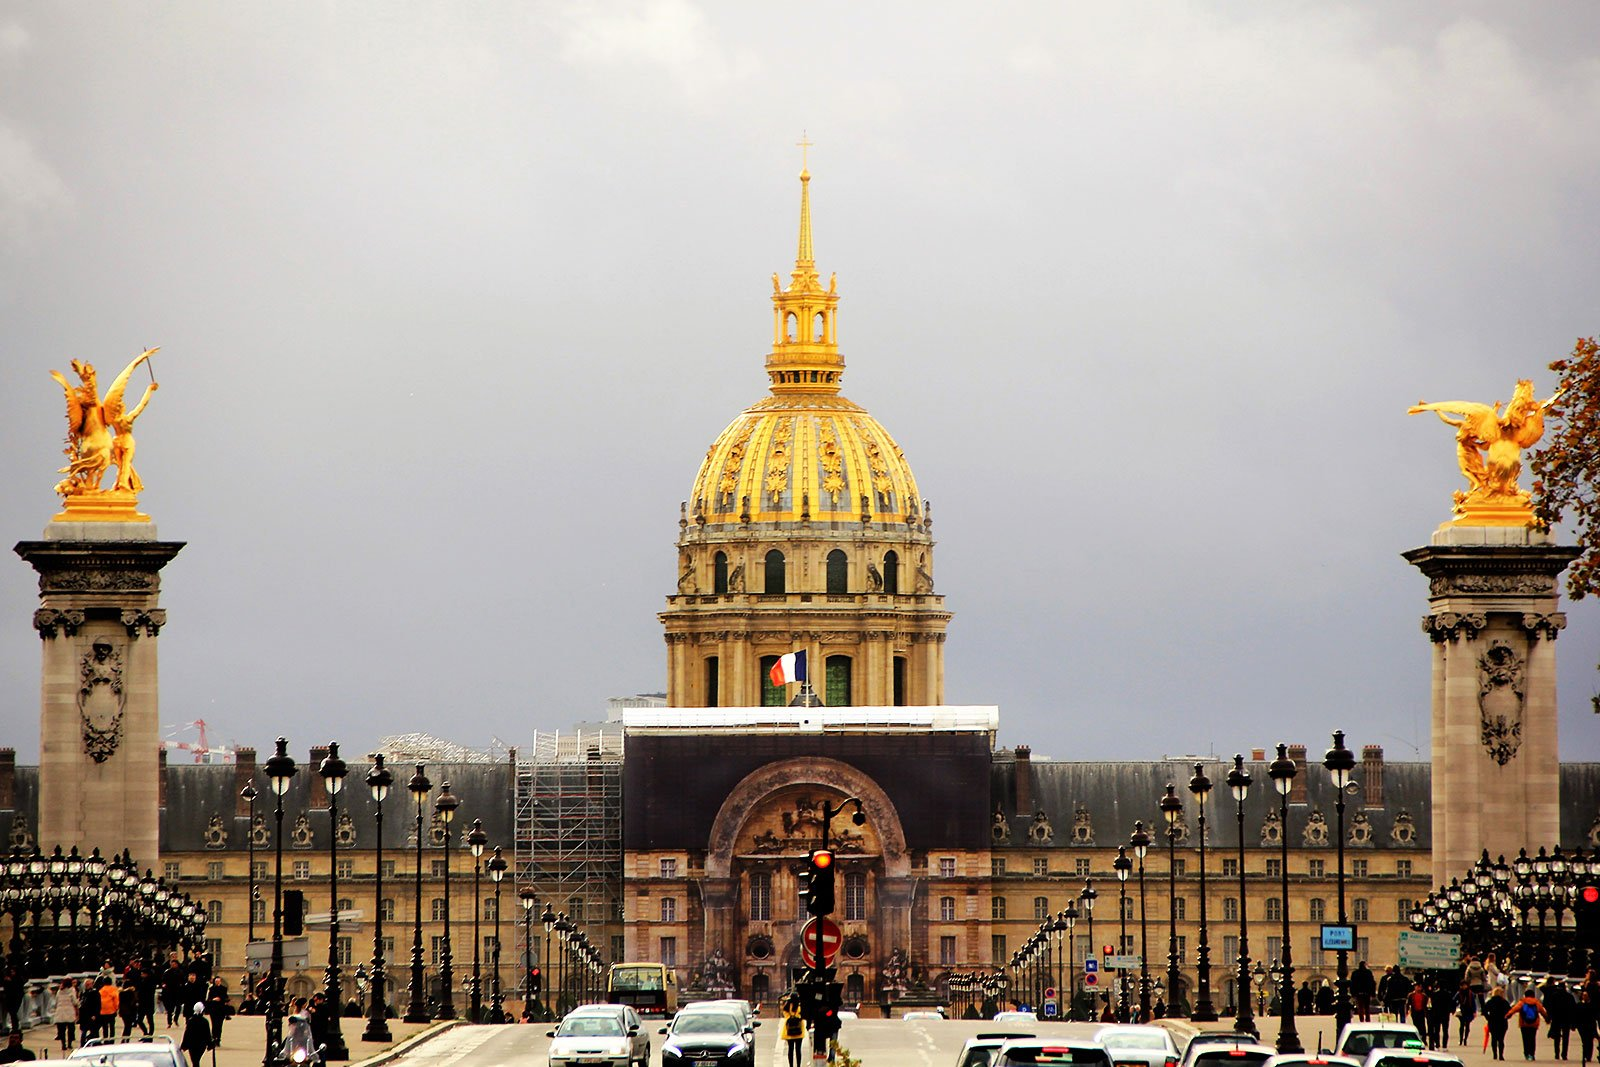 Les Invalides Paris France